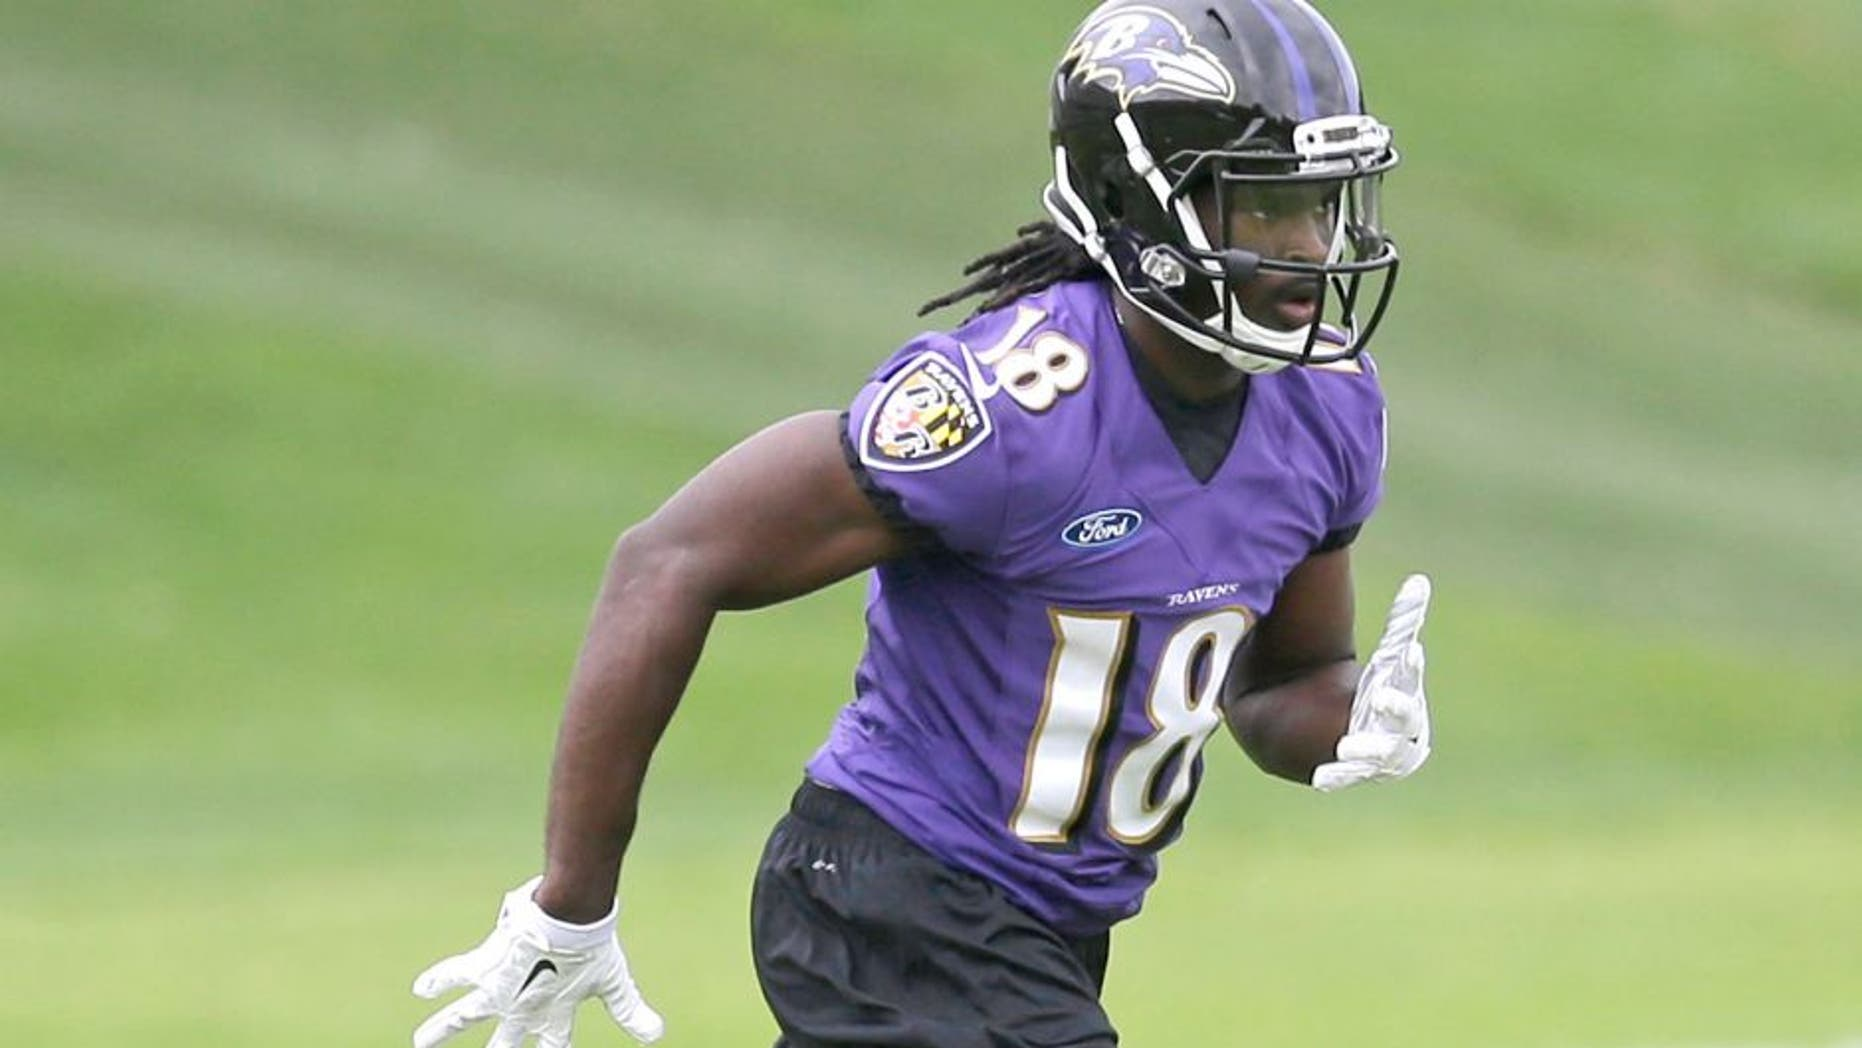 Baltimore Ravens wide receiver Breshad Perriman runs a drill at an NFL football rookie camp, Saturday, May 9, 2015, in Owings Mills, Md. (AP Photo/Patrick Semansky)